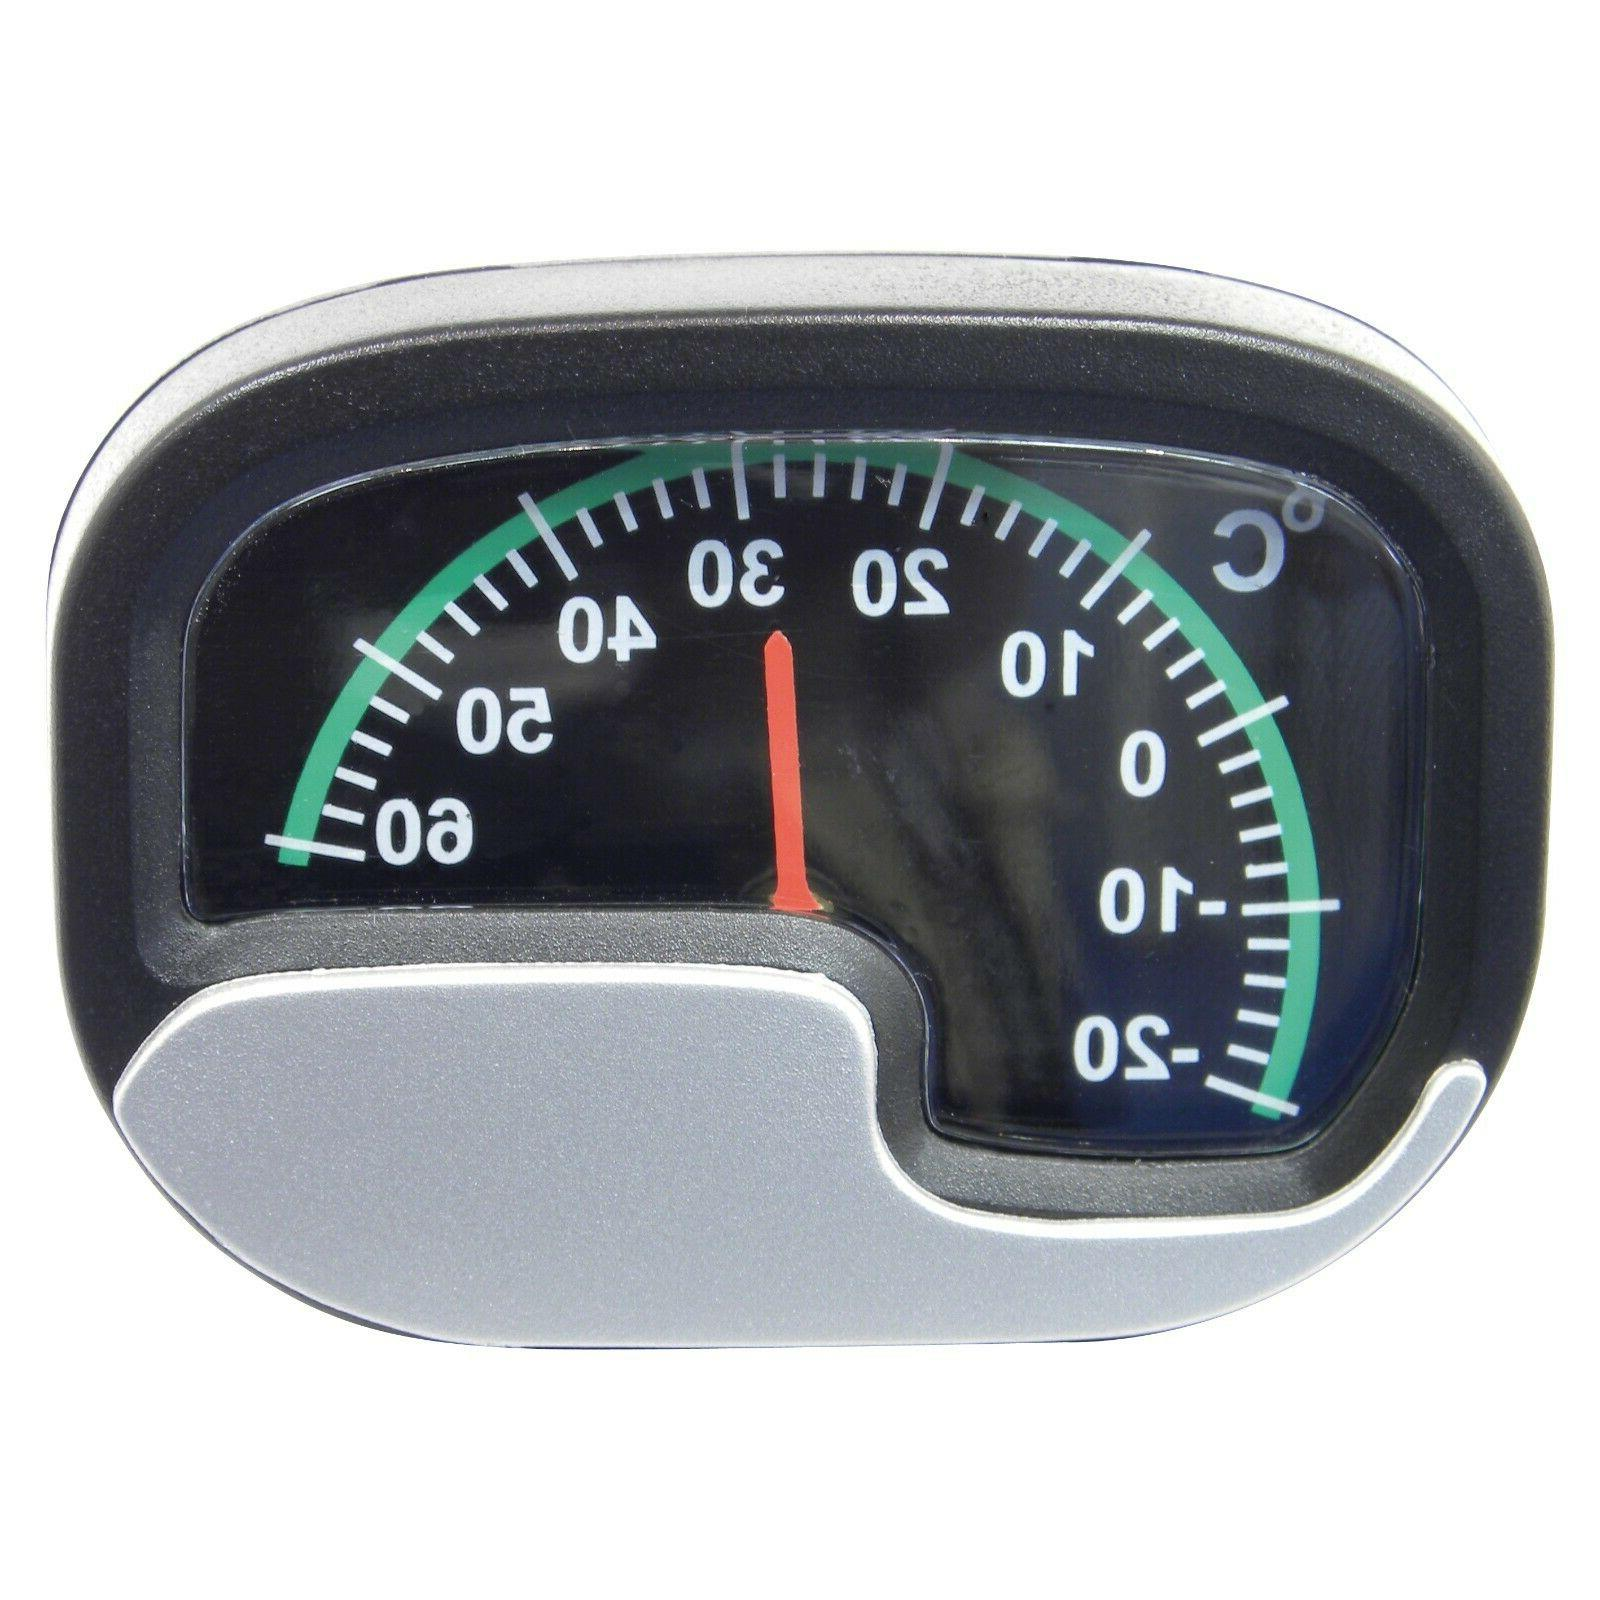 thermometre luxe interieur auto voiture camping car